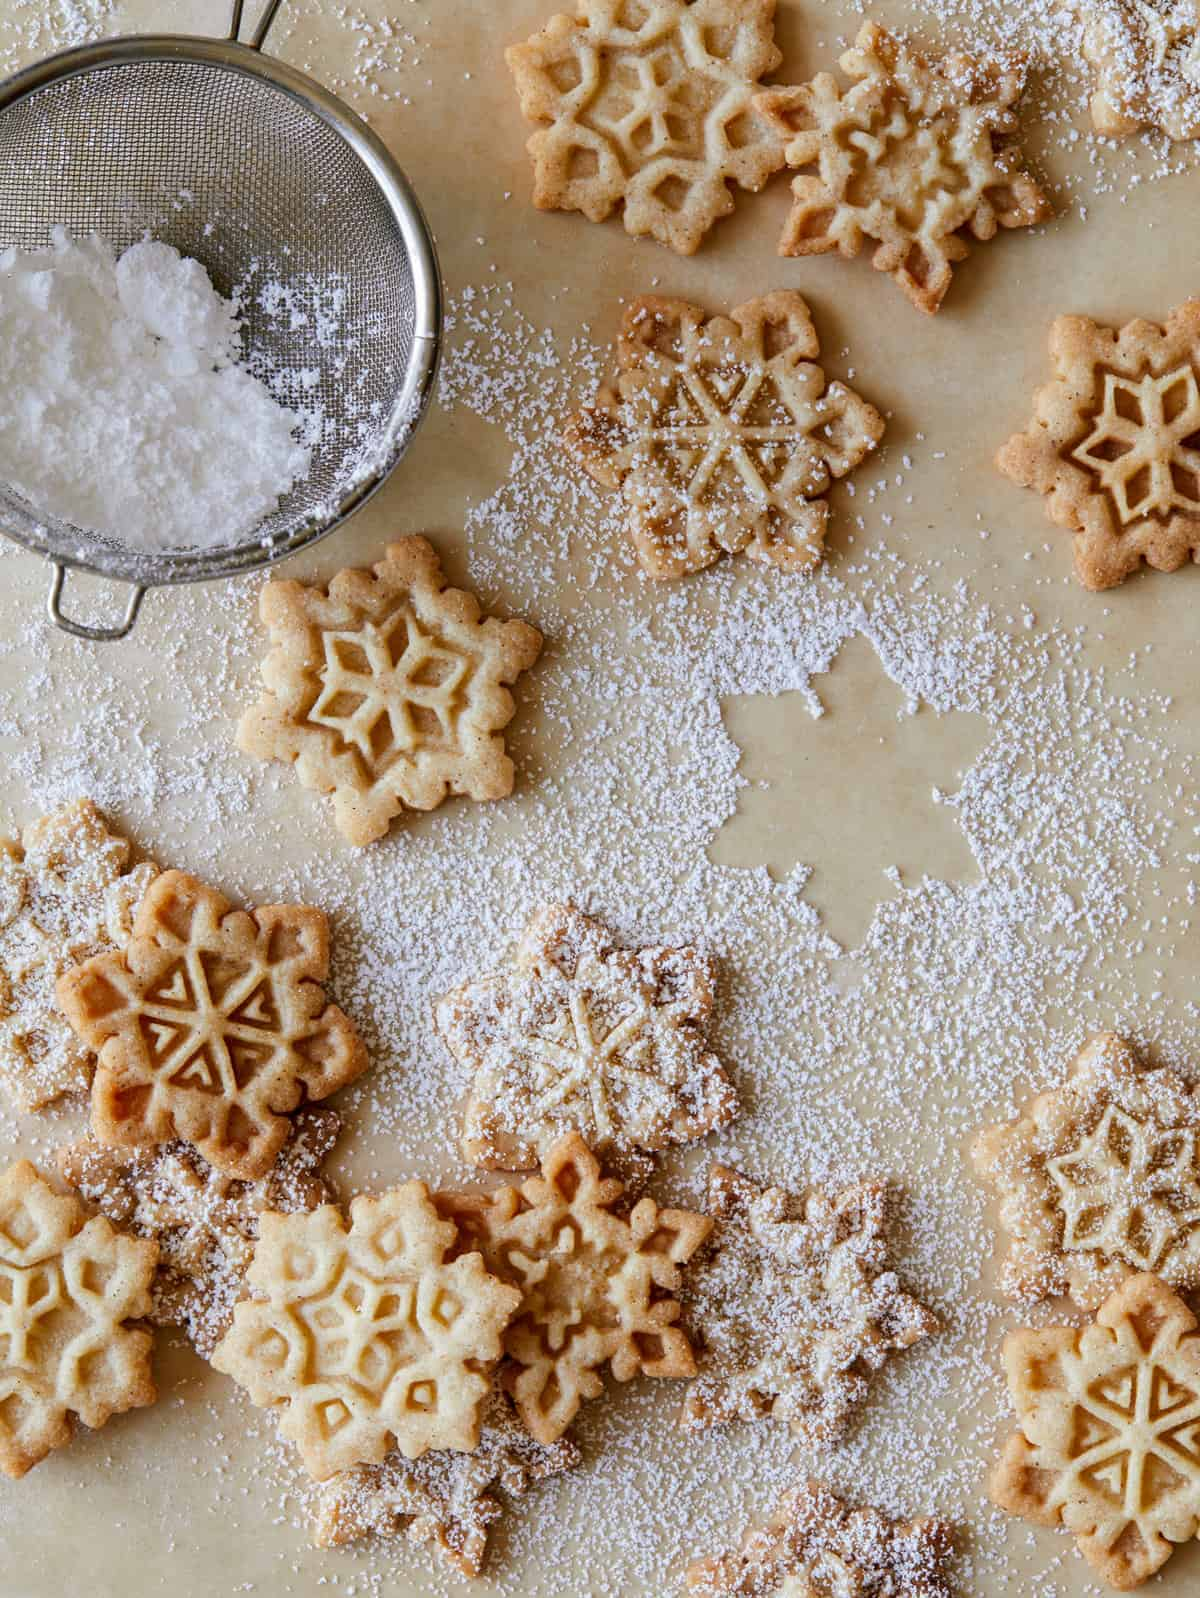 Gingerbread snowflake cookies being dusted with sugar.